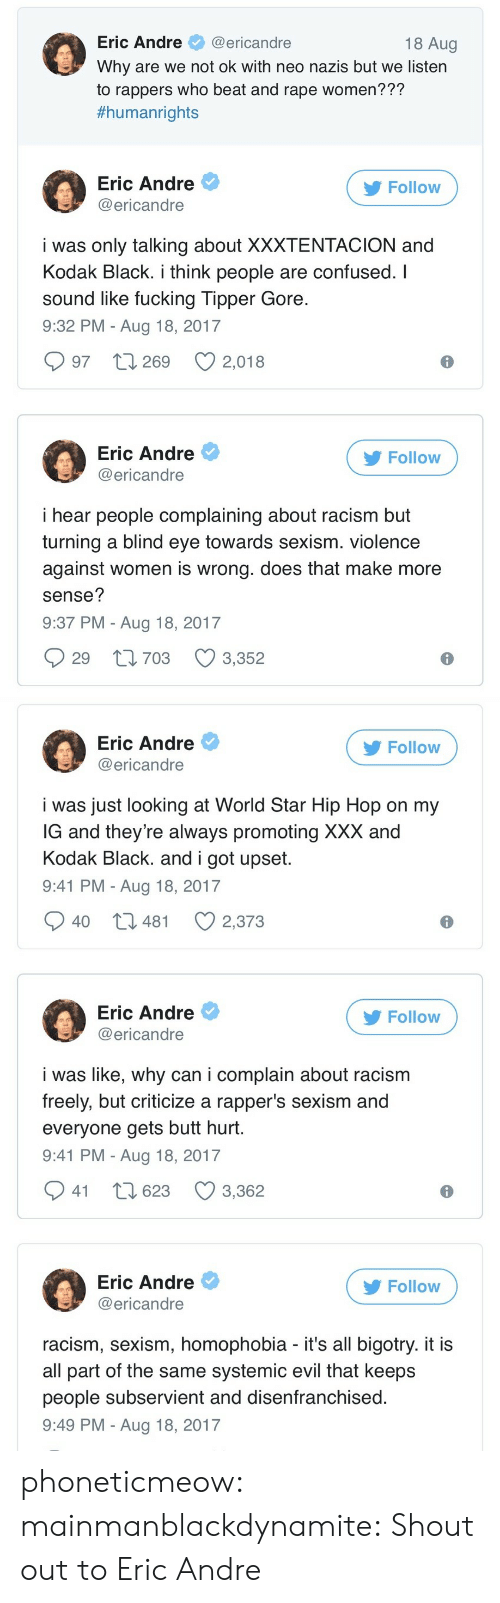 sexism: Eric Andre@ericandre  Why are we not ok with neo nazis but we listern  to rappers who beat and rape women???  #humanrights  18 Aug  Eric Andre  @ericandre  Follow  i was only talking about XXXTENTACION and  Kodak Black. i think people are confused. I  sound like fucking Tipper Gore  9:32 PM - Aug 18, 2017  997 t 269 2,018  Eric Andre  @ericandre  Follow  i hear people complaining about racism but  turning a blind eye towards sexism. violence  against women is wrong. does that make more  sense?  9:37 PM - Aug 18, 2017  29 t1703 3,352   Eric Andre  @ericandre  Follow  i was just looking at World Star Hip Hop on my  G and they're always promoting XXX and  Kodak Black. and i got upset  9:41 PM - Aug 18, 2017  40 t3 481  2,373  Eric Andre  @ericandre  Follow  i was like, why can i complain about racism  freely, but criticize a rapper's sexism and  everyone gets butt hurt  9:41 PM - Aug 18, 2017  941 t 623 3,362  Eric Andre  @ericandre  Follow  racism, sexism, homophobia - it's all bigotry. it i:s  all part of the same systemic evil that keeps  people subservient and disenfranchised  9:49 PM - Aug 18, 2017 phoneticmeow:  mainmanblackdynamite: Shout out to Eric Andre